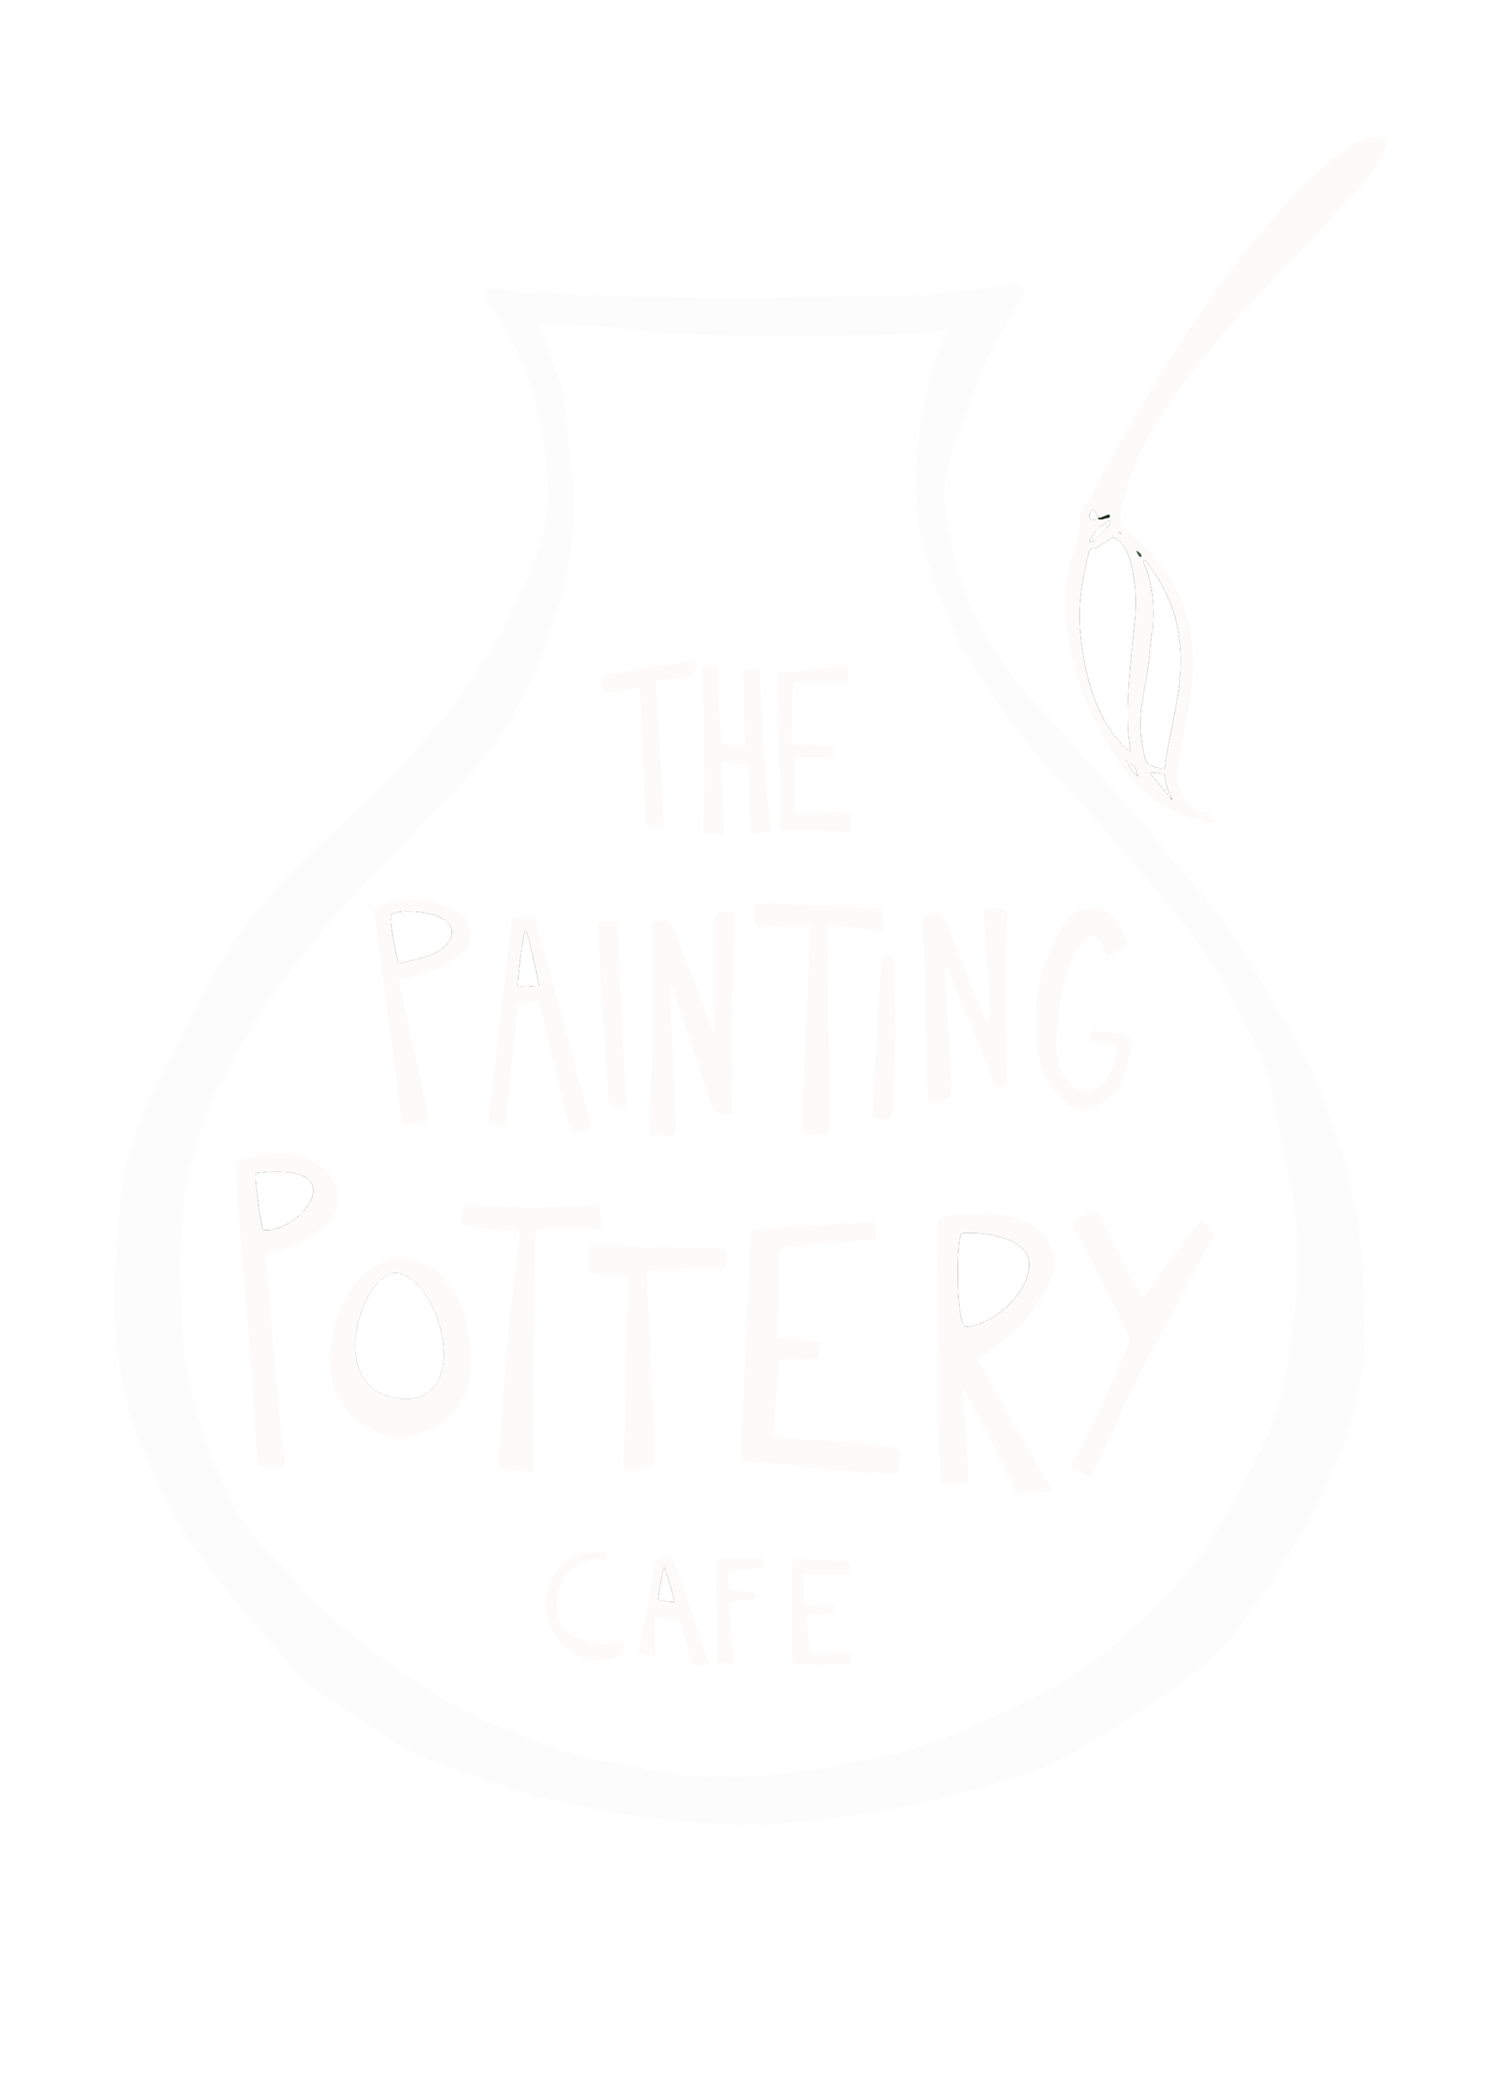 The Painting Pottery Cafe